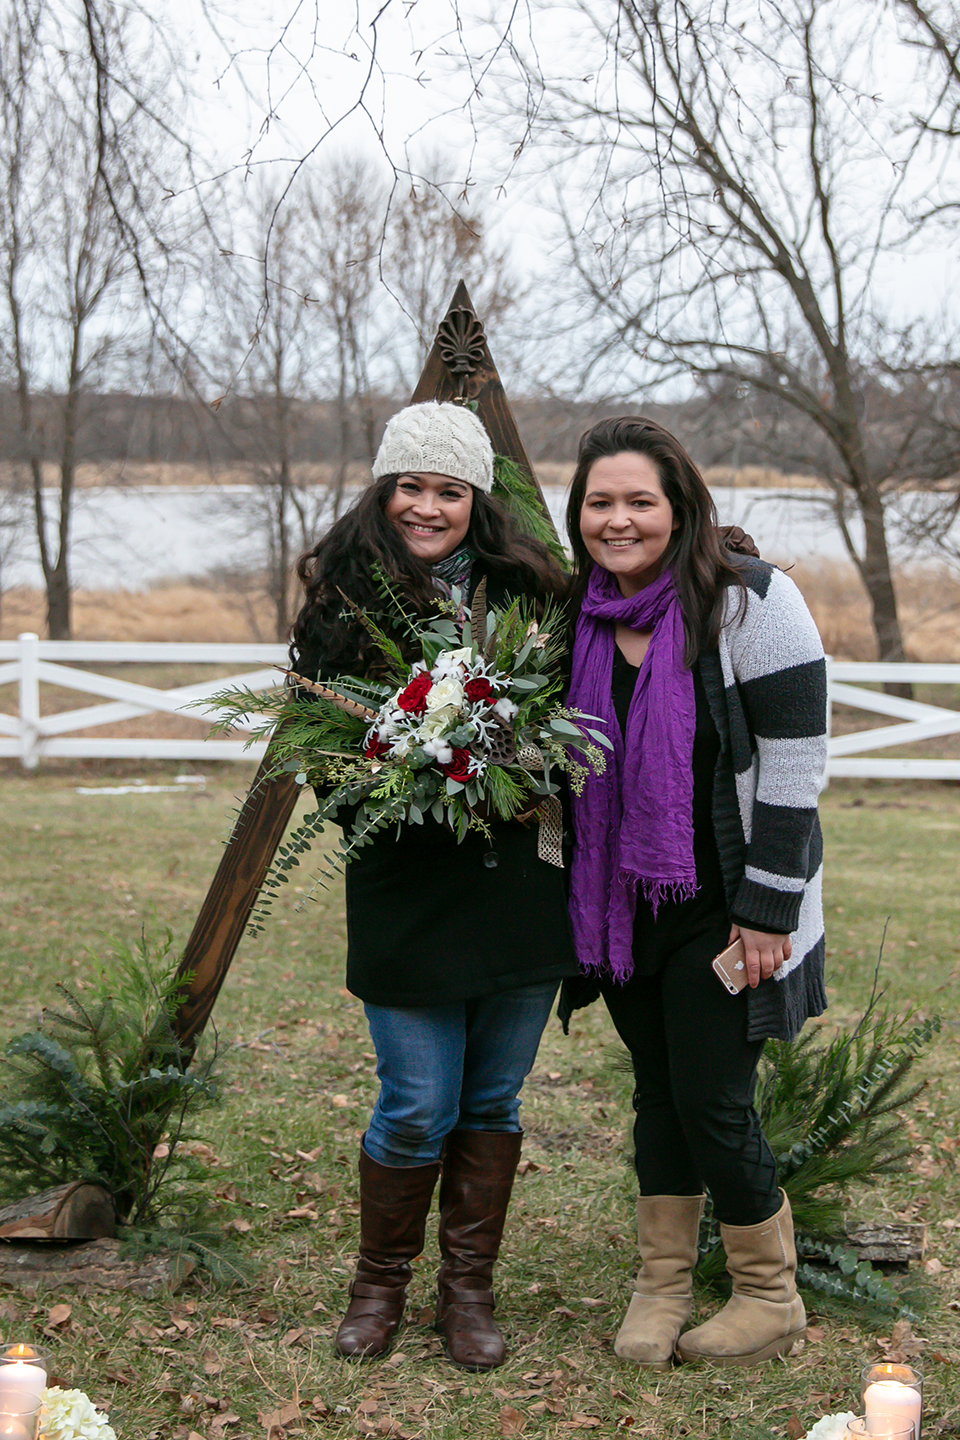 Terri of Uy-Lennon Floral & Christina of Dos Goats Plans